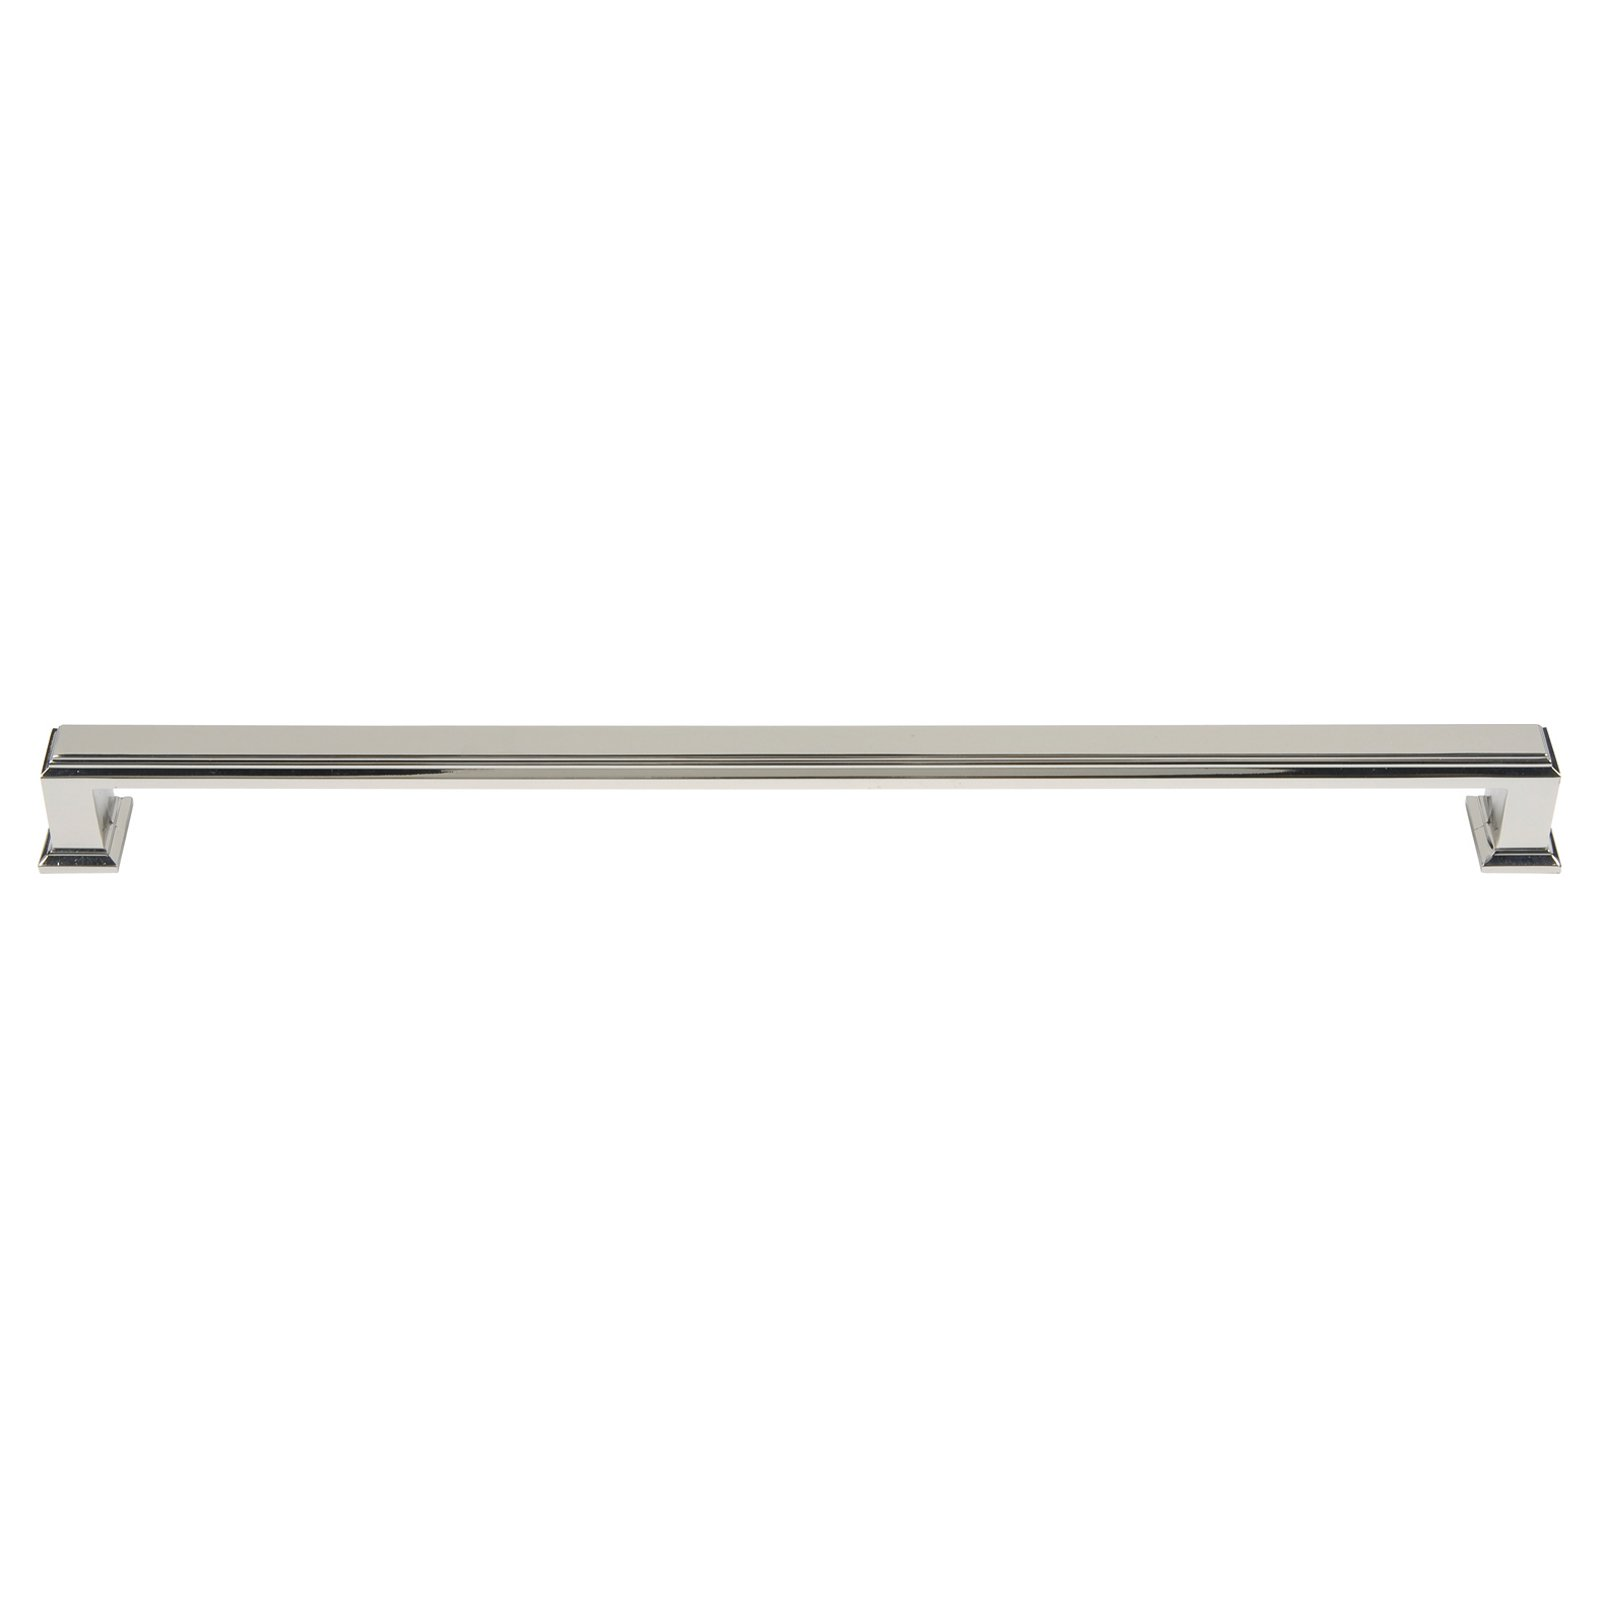 Sutton Place Collection 19.6 in. Polished Nickel Appliance Pull